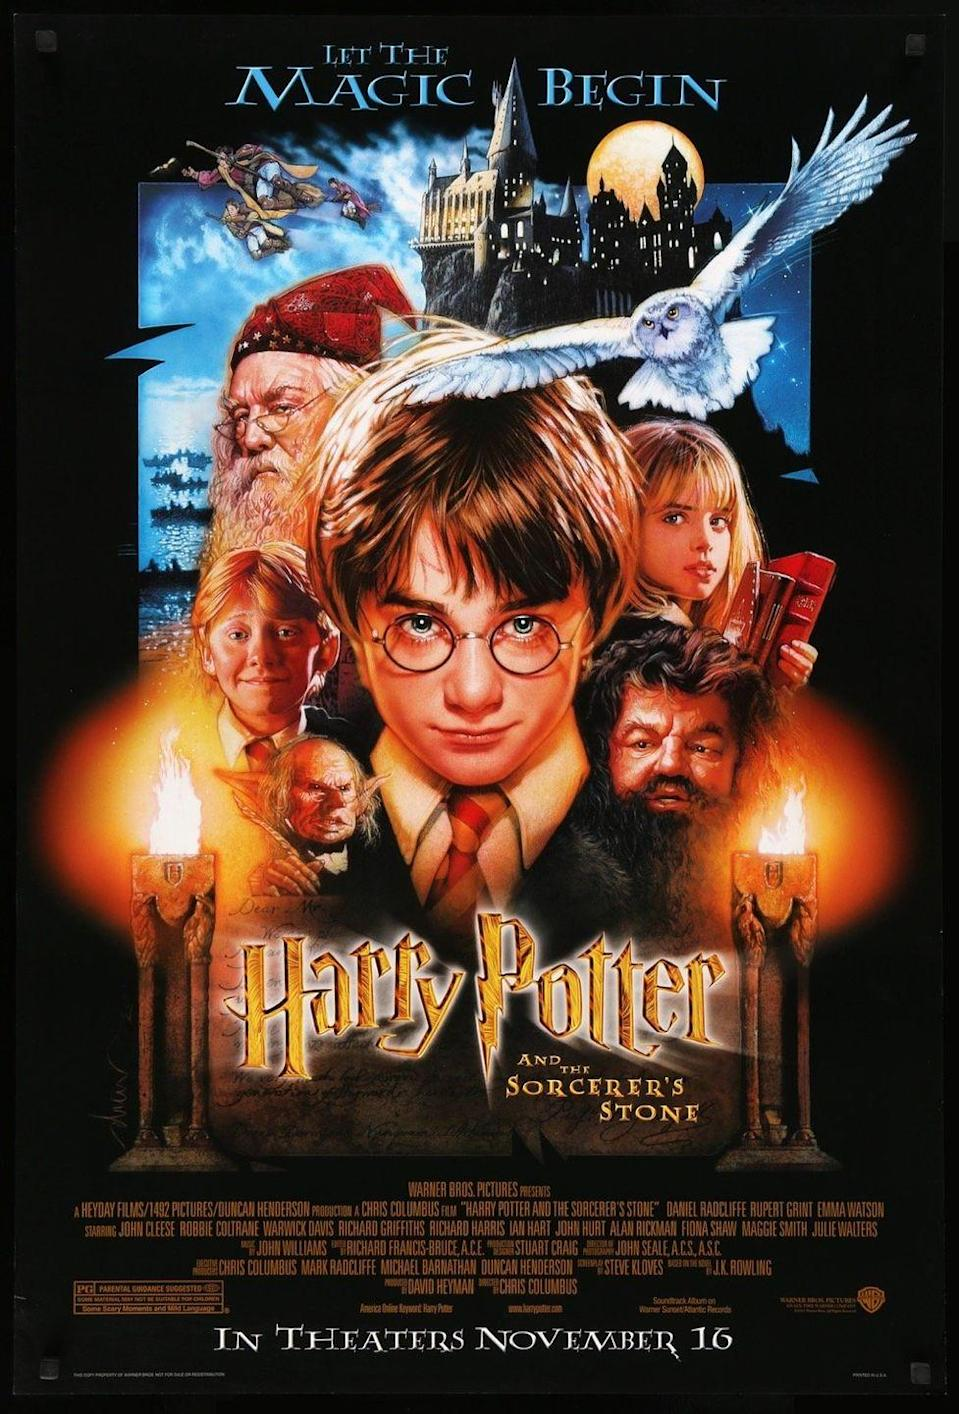 <p>It's hard to imagine a world without Harry Potter Weekend on TV. J.K. Rowling's debut, Harry Potter and the Sorcerer's Stone, the fantastical world she created hit the big screen on November 14, 2001 with unknowns Daniel Radcliffe and Emma Watson who were just 11 and 10 years-old at the time. After 8 movies in total, the tale of Harry and his friends attending Hogwarts for the first time as naive wizards will forever remain a classic. </p>